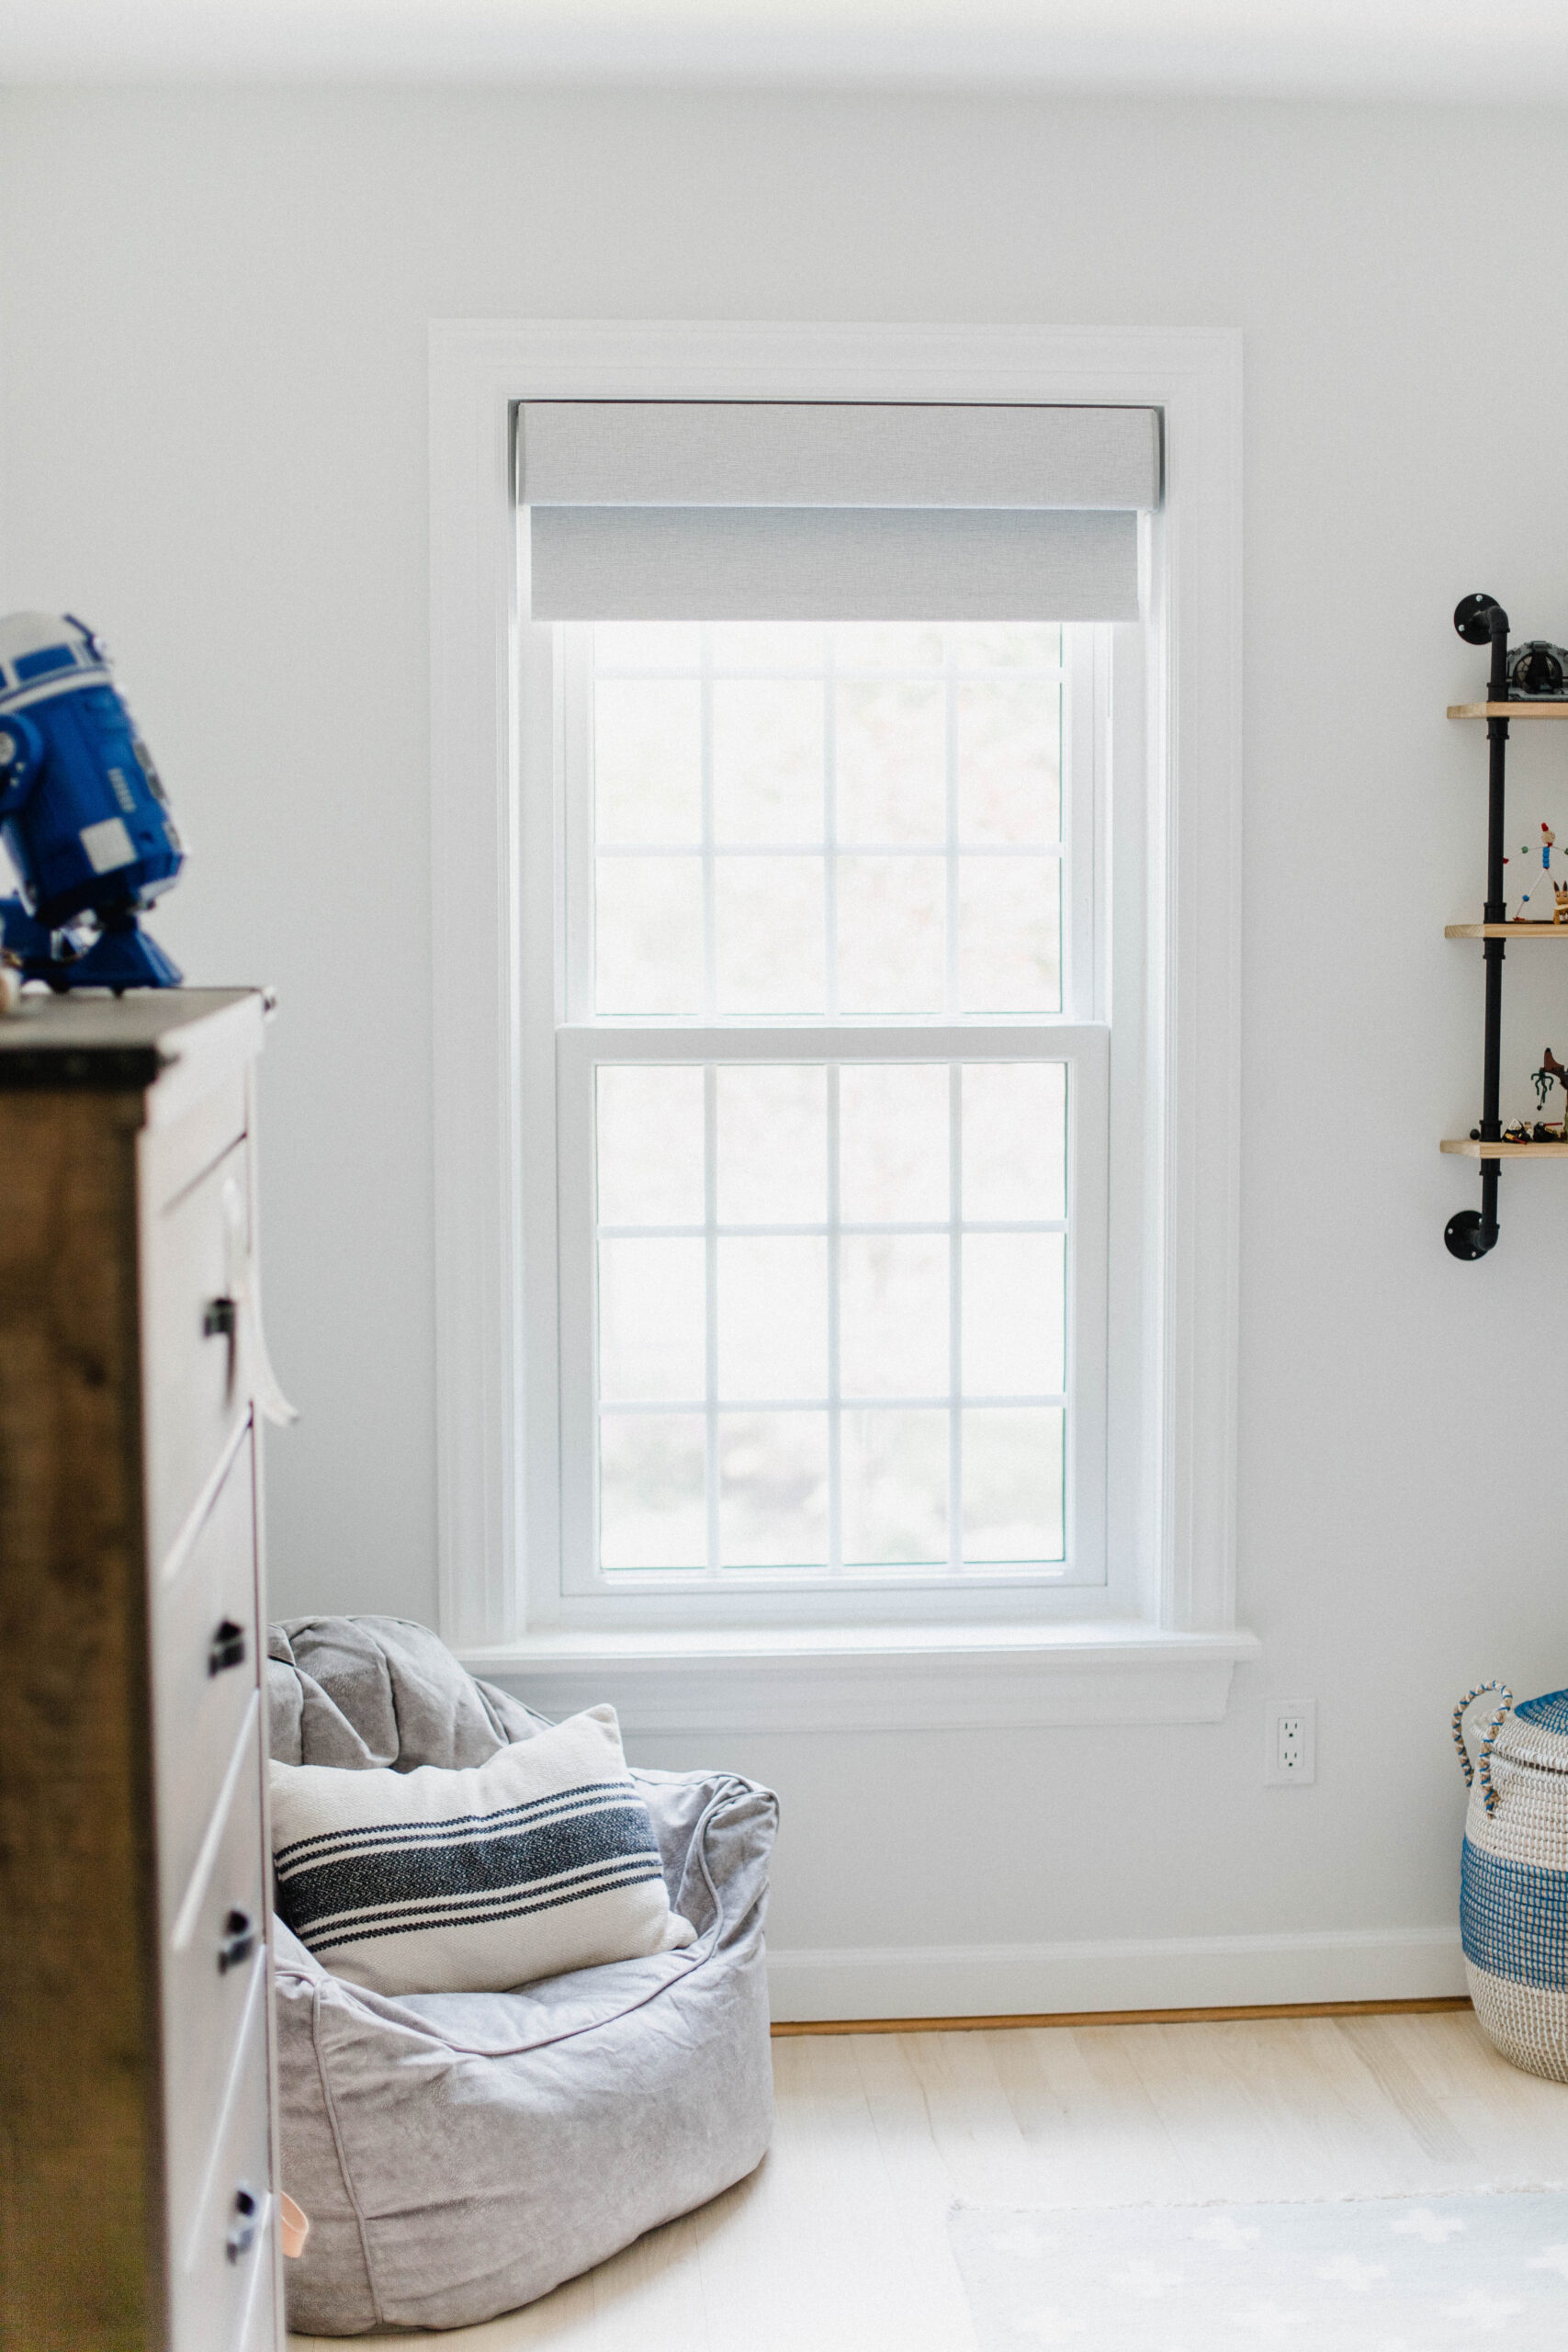 Looking for motorized shades for your home? Connecticut life and style blogger Lauren McBride shares Serena Smart Shades.